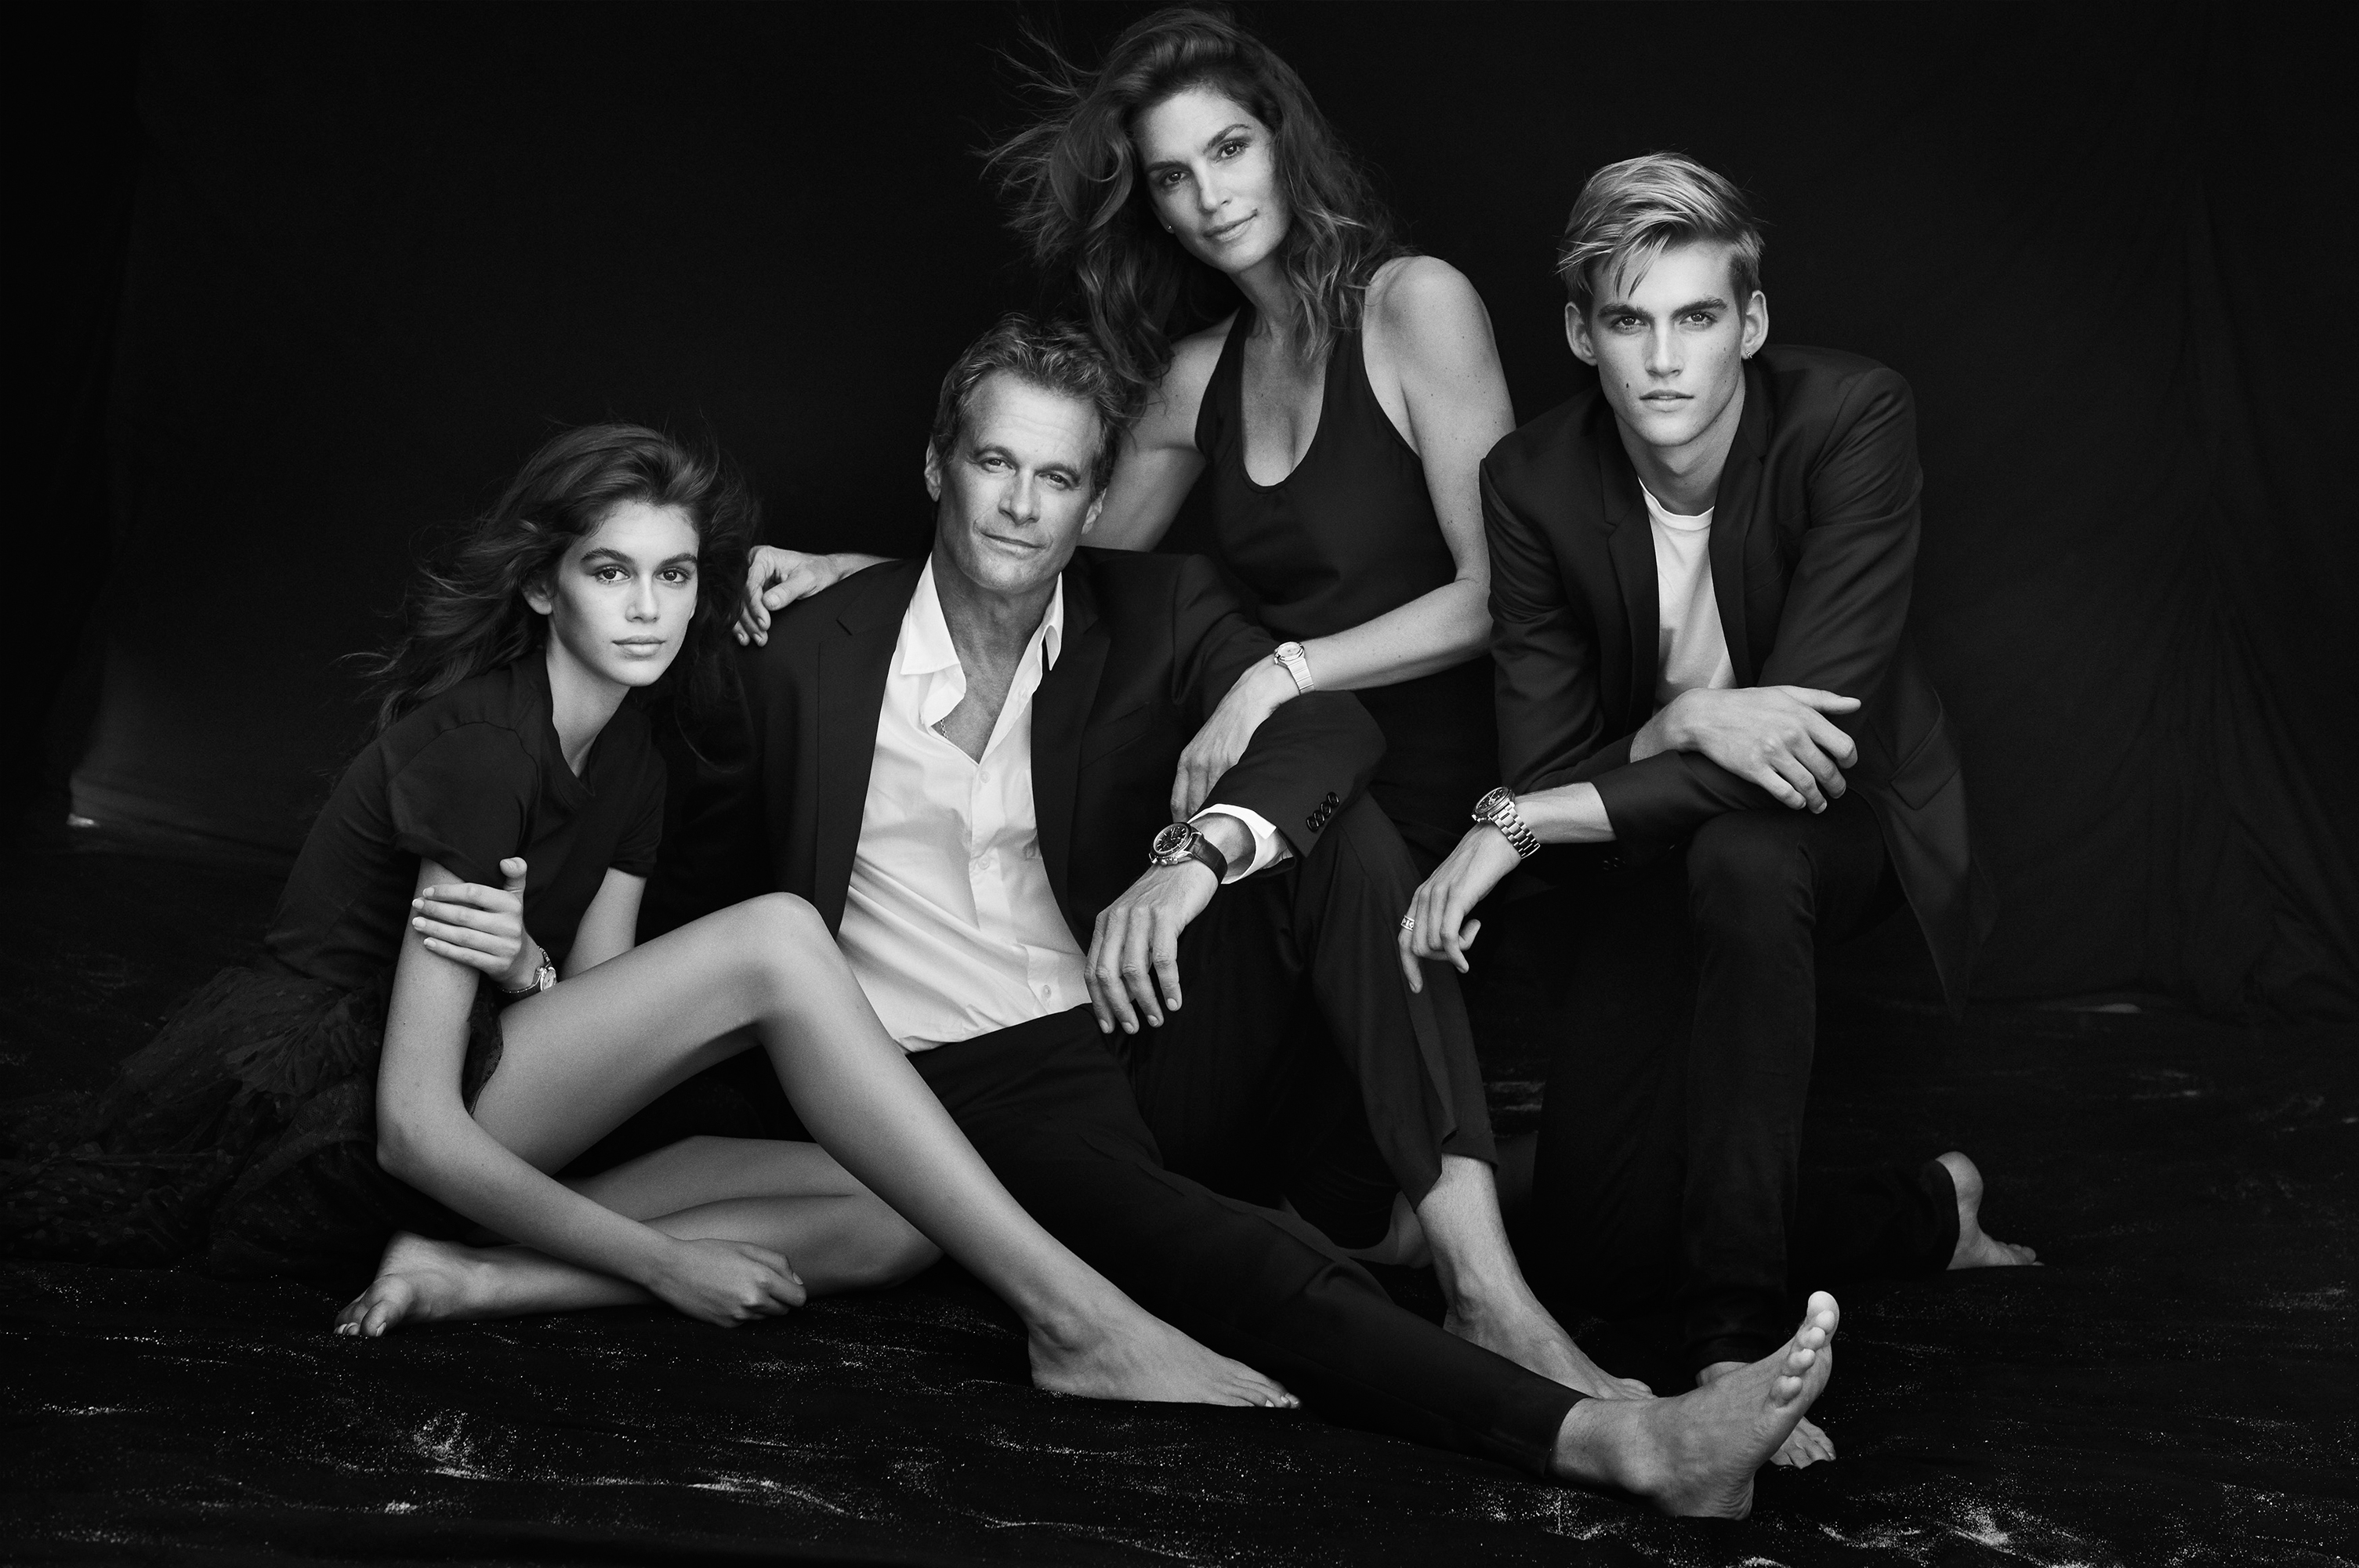 Omega's latest campaign is a portrait of the world's most photogenic family